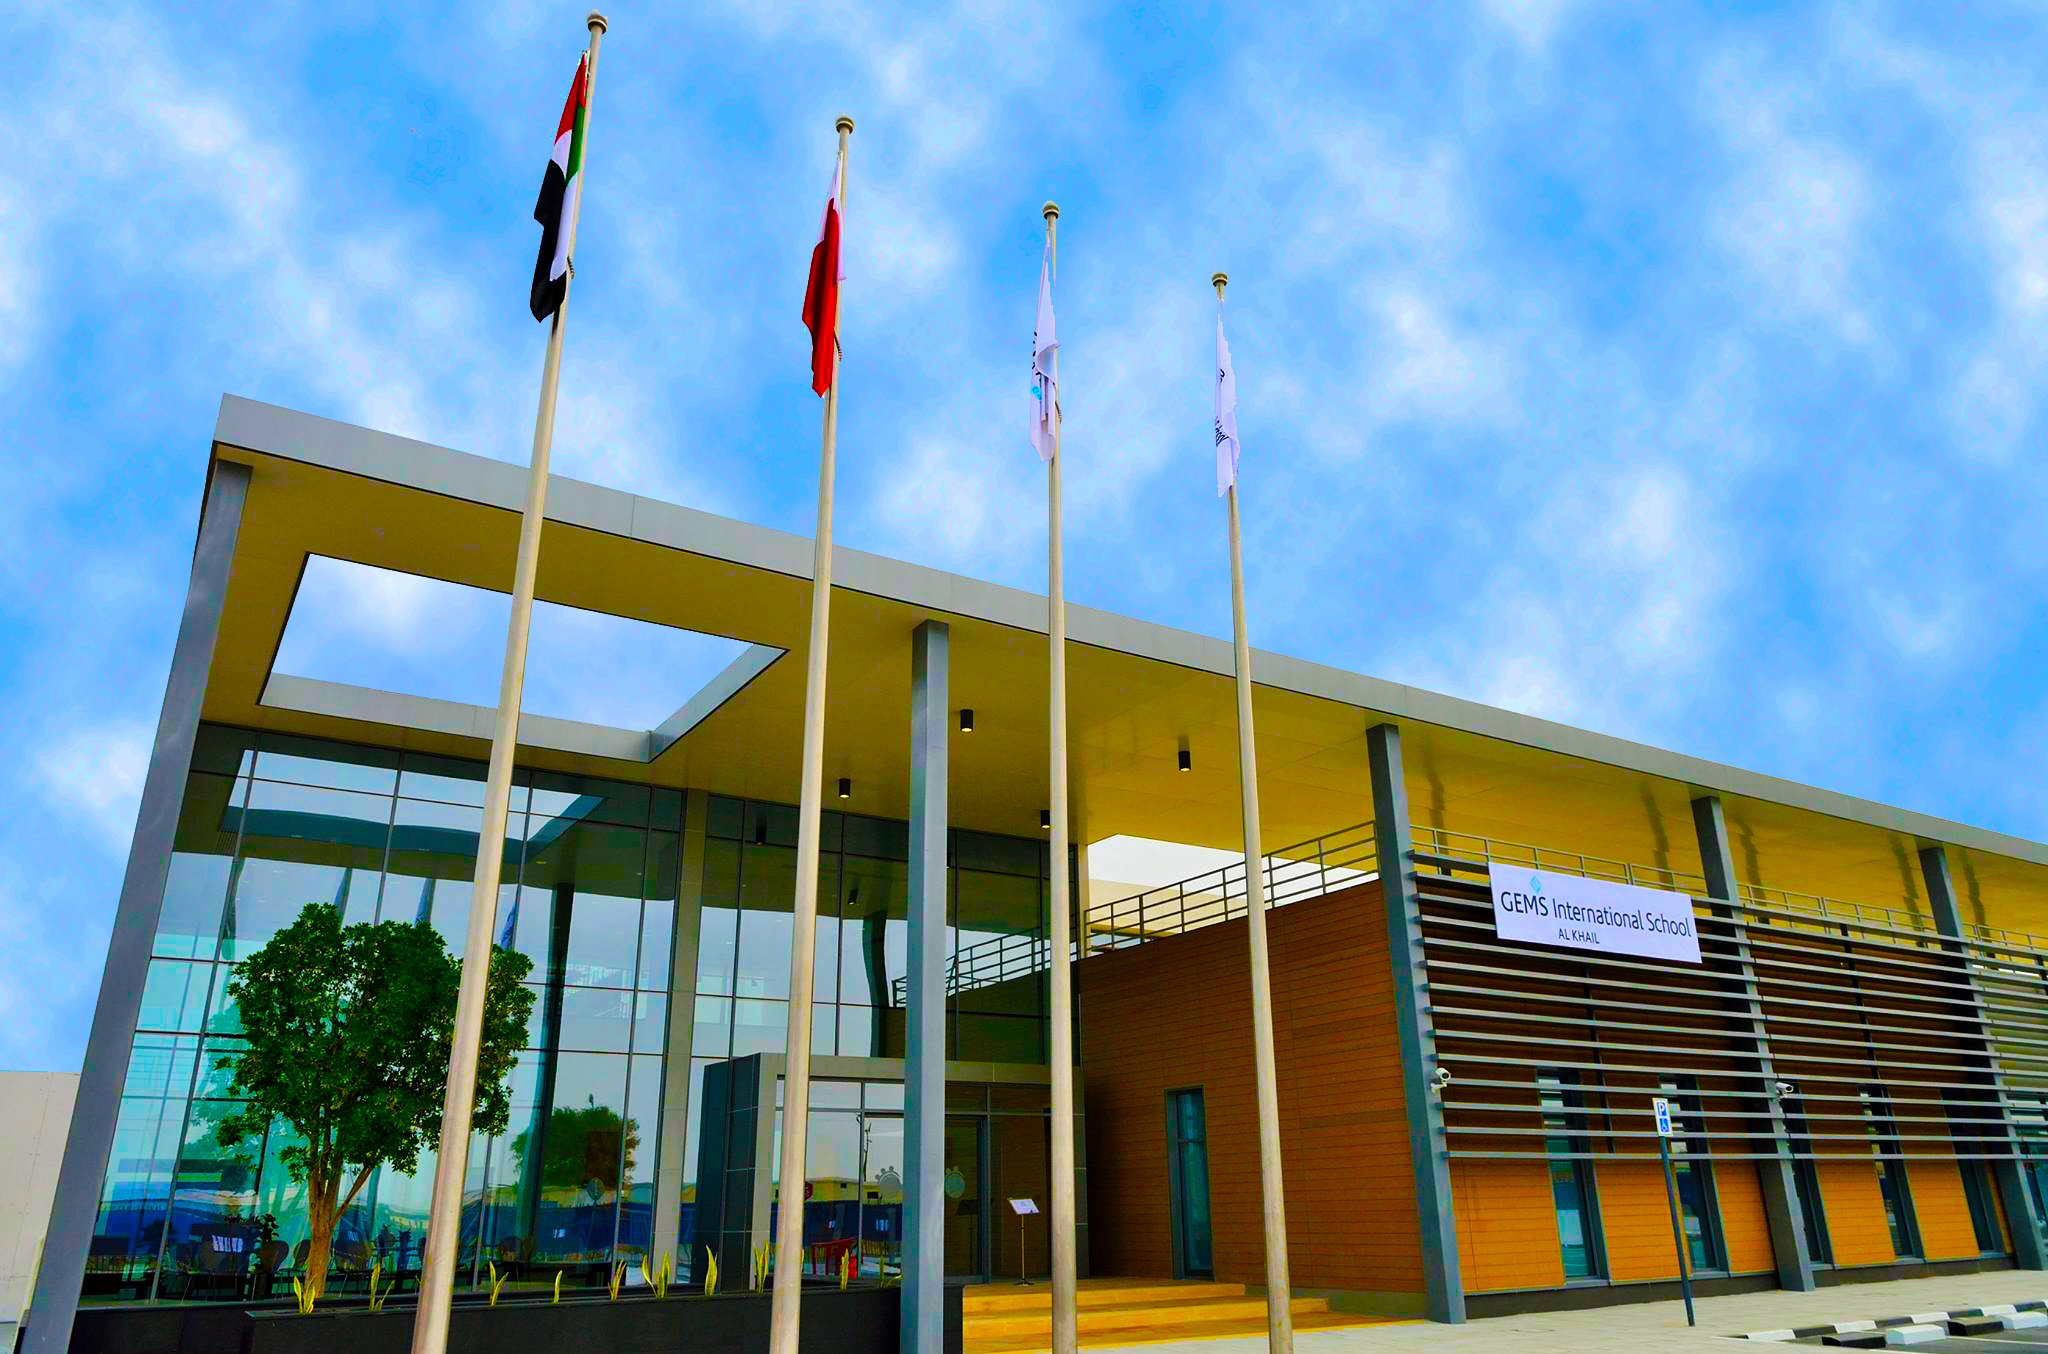 Close-up image of the GEMS International School Al Khail main entrance